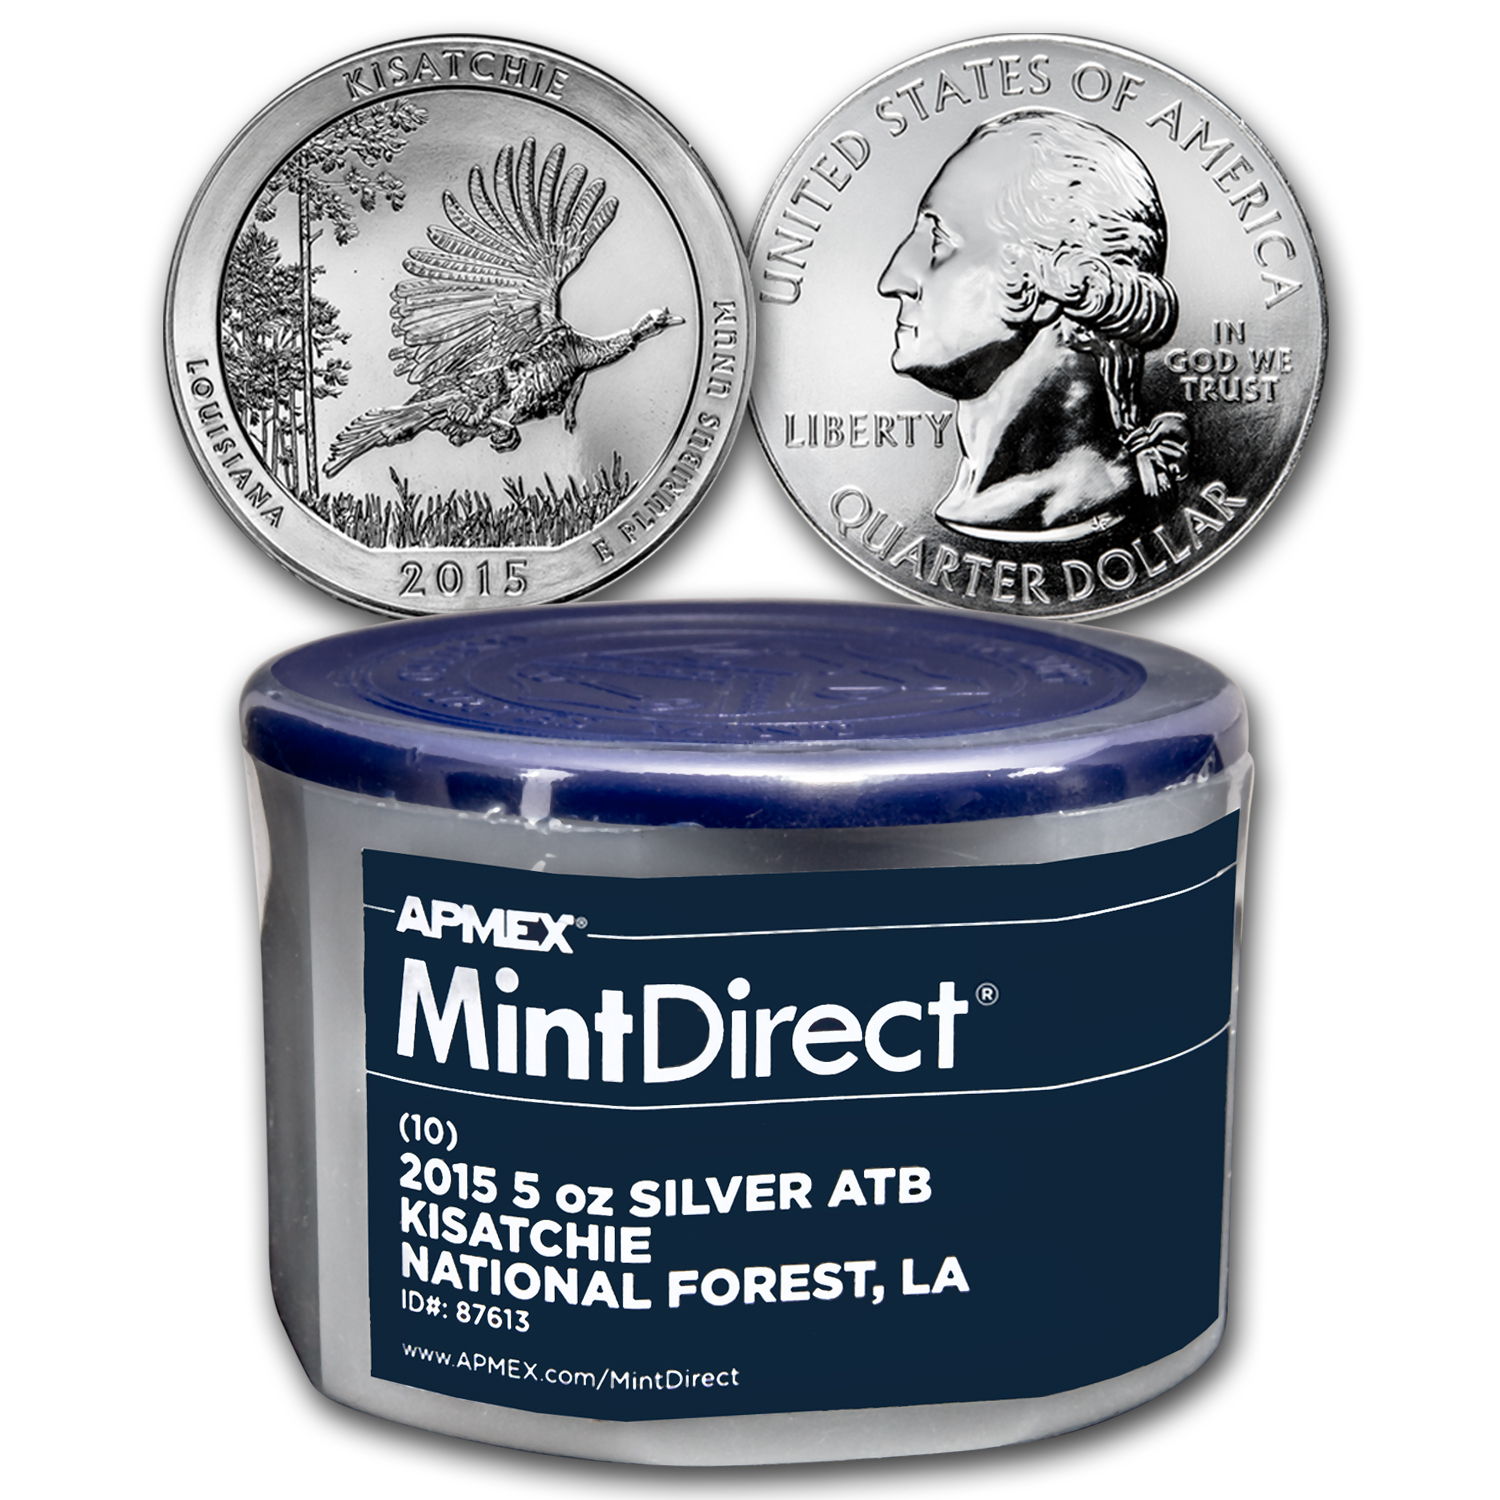 2015 5 oz Silver ATB Kisatchie (10-Coin MintDirect® Tube)